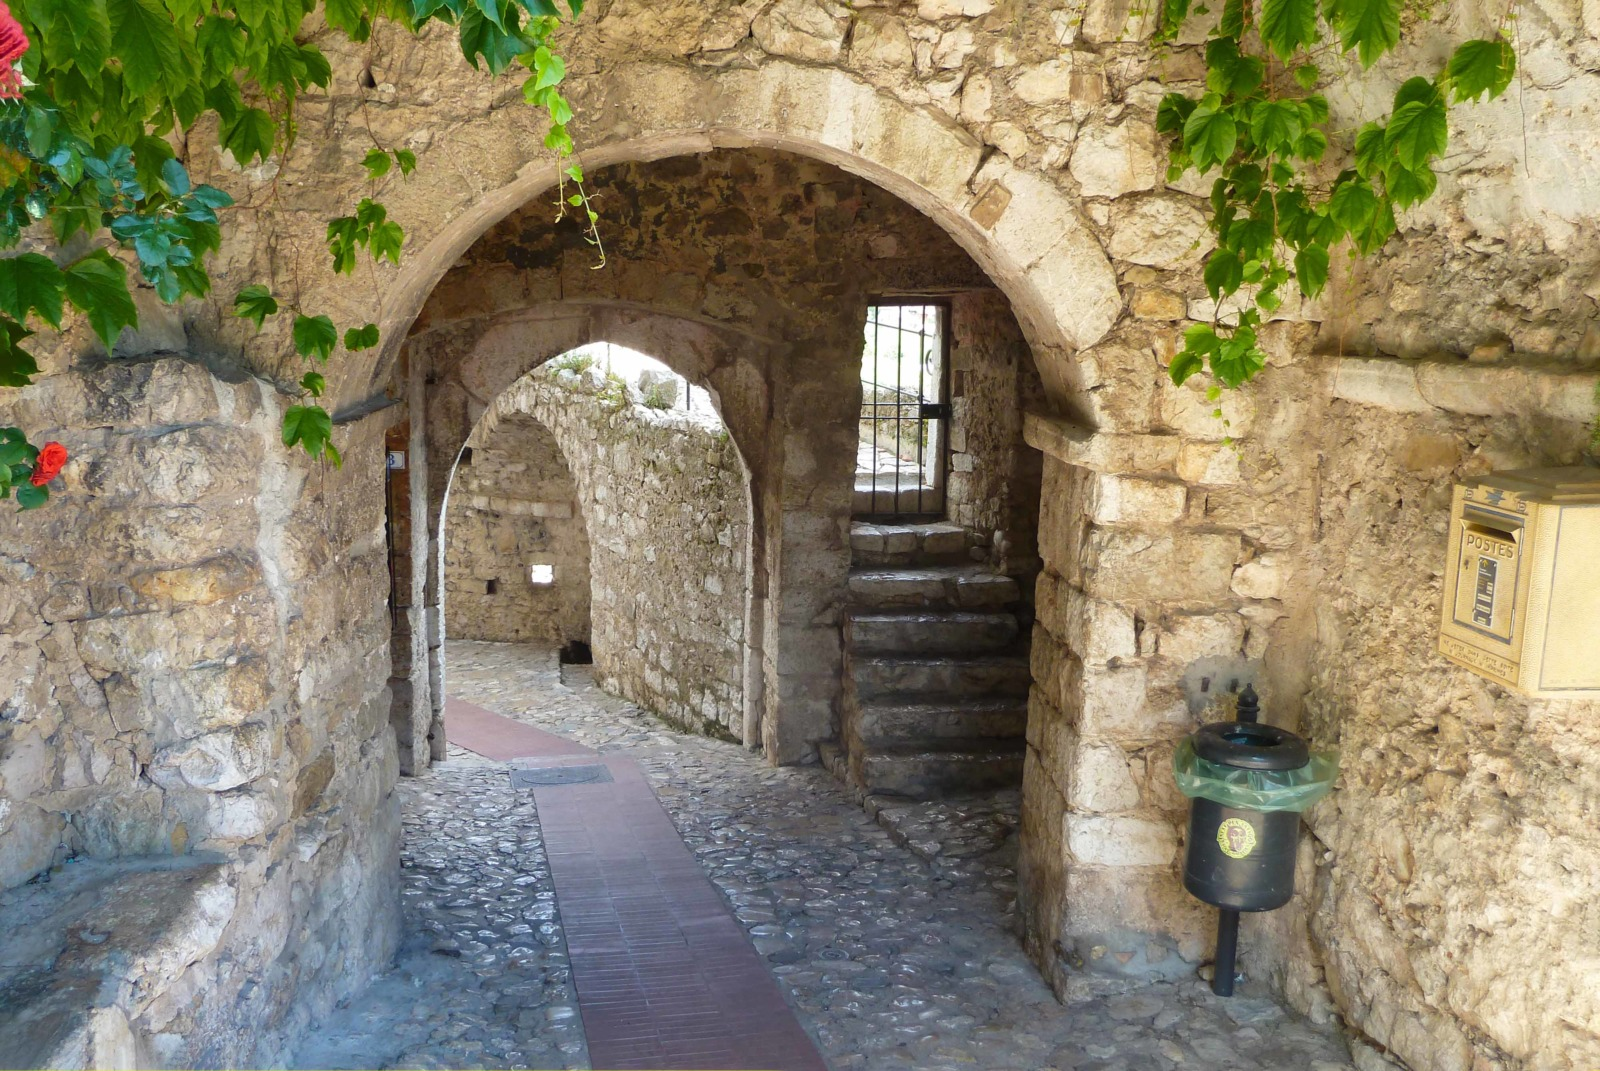 Eze's Poterne gateway © Abxbay - licence [CC BY-SA 4.0] from Wikimedia Commons